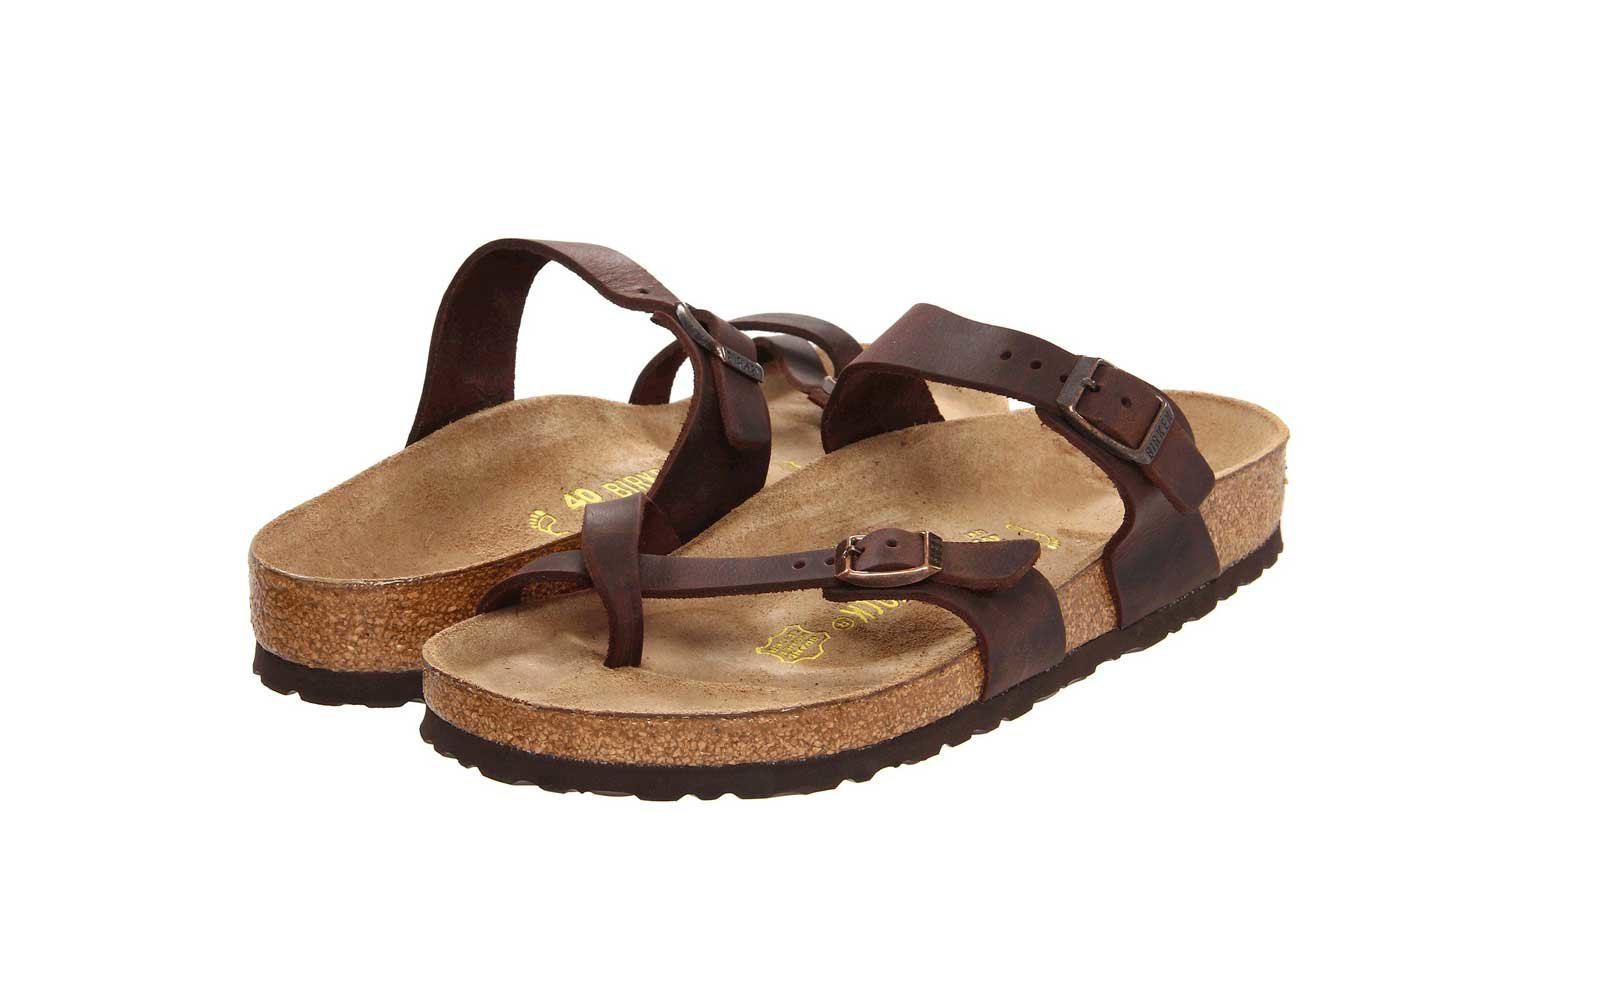 coral walking shoes for pin fitflops stuart the flip rhinestone sandals brown owned you of comfortable comforter and know madeline one if most flops ever mattress those are